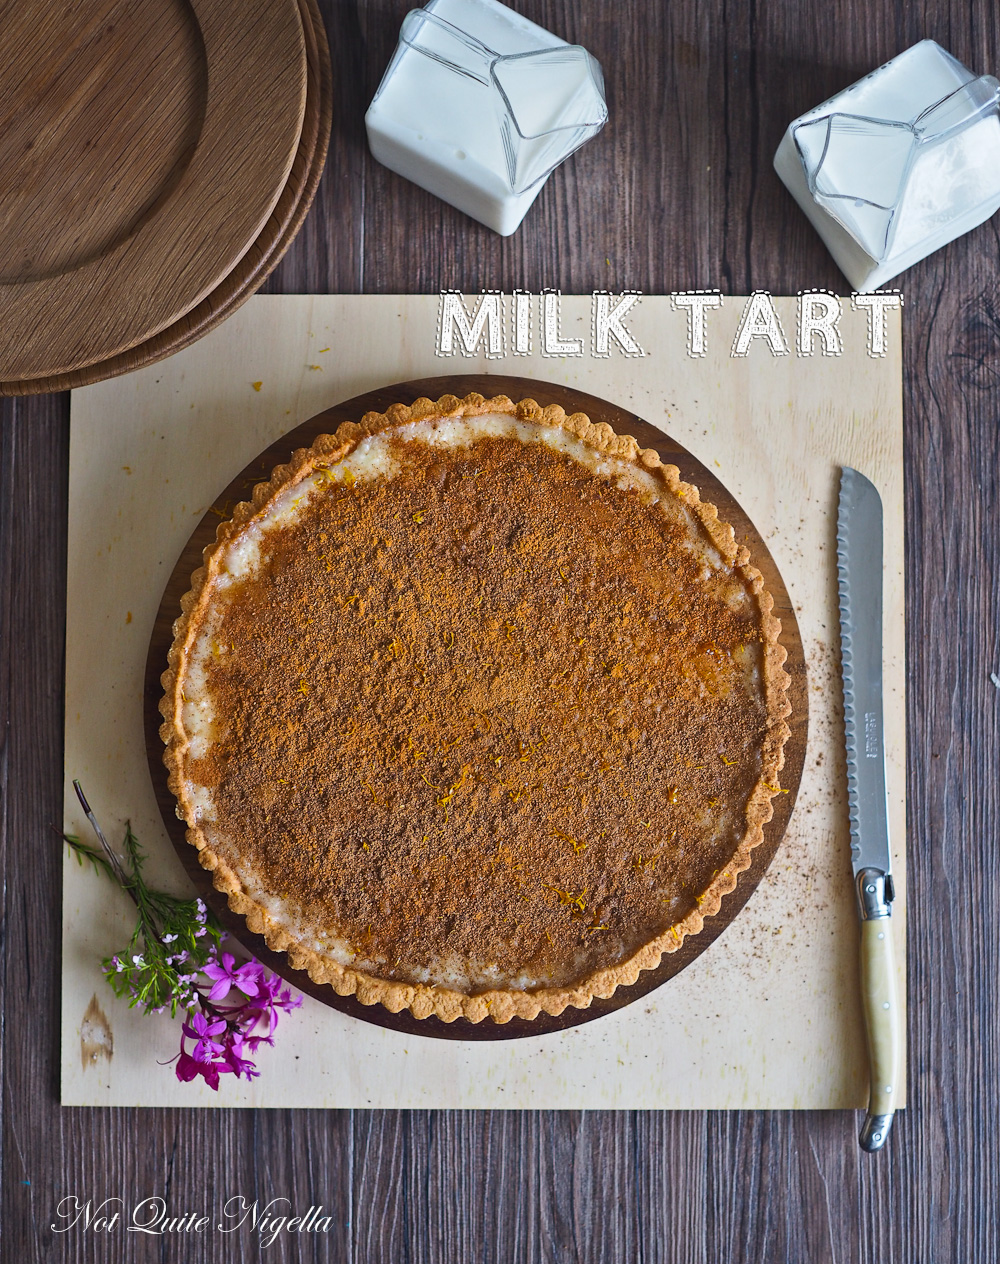 Milk Tart Melktert recipe South African